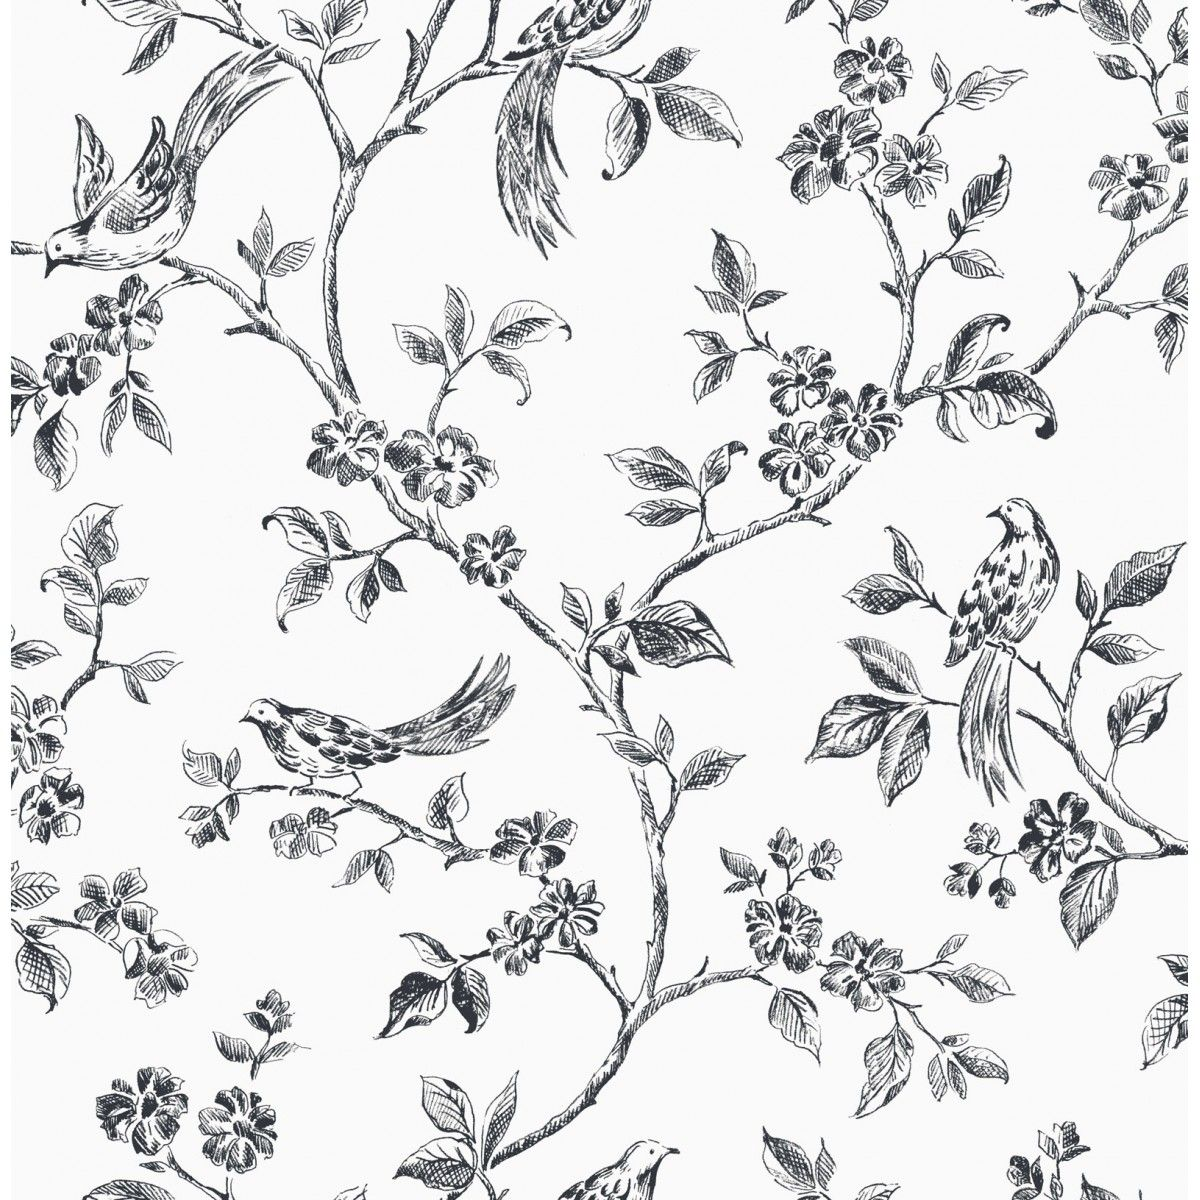 012 Floral Print Black & White Blue wallpapers, Bird